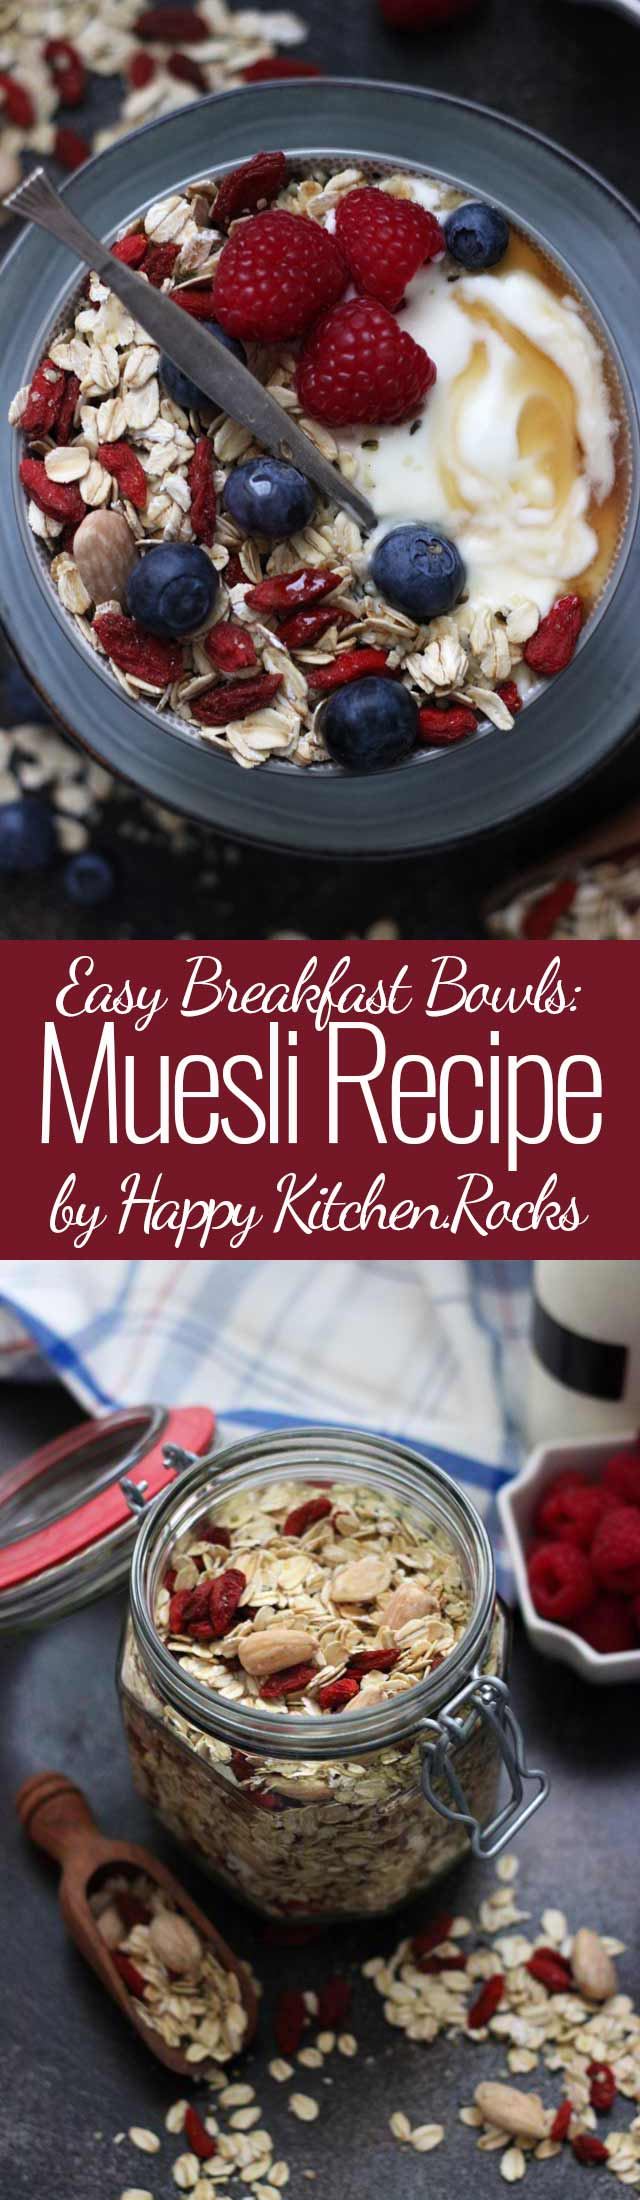 Muesli Recipe: A Healthy and Delicious Breakfast Idea Super Long Collage with Text Overlay